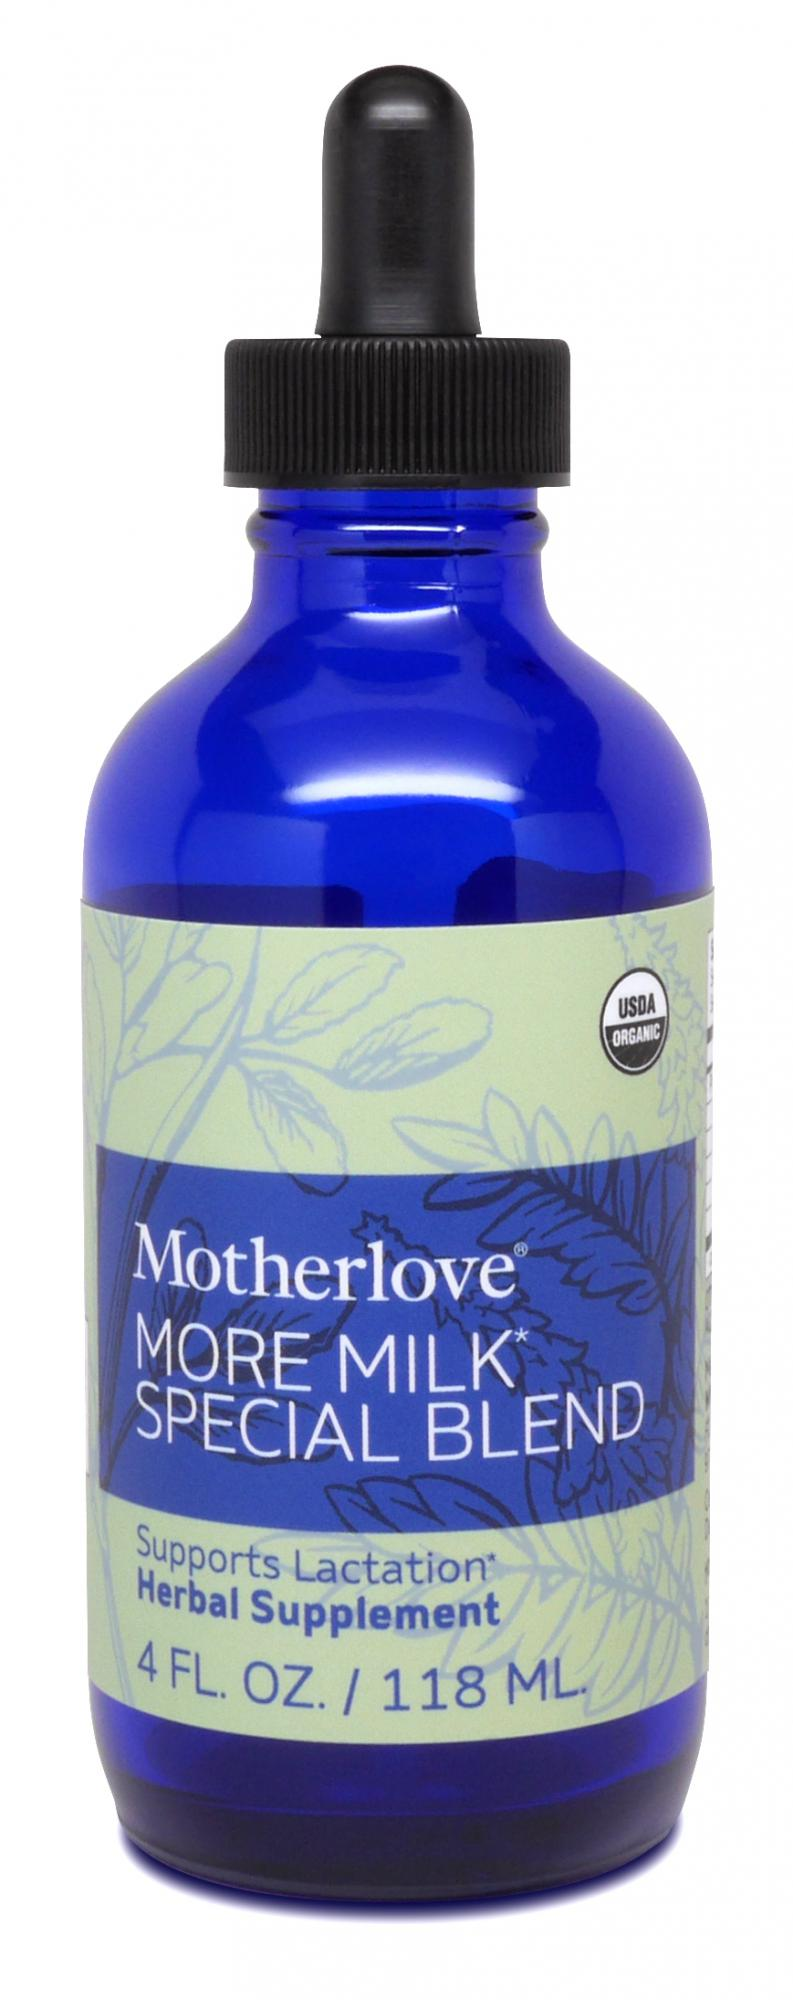 motherlove-more-milk-special-blend-4.jpg